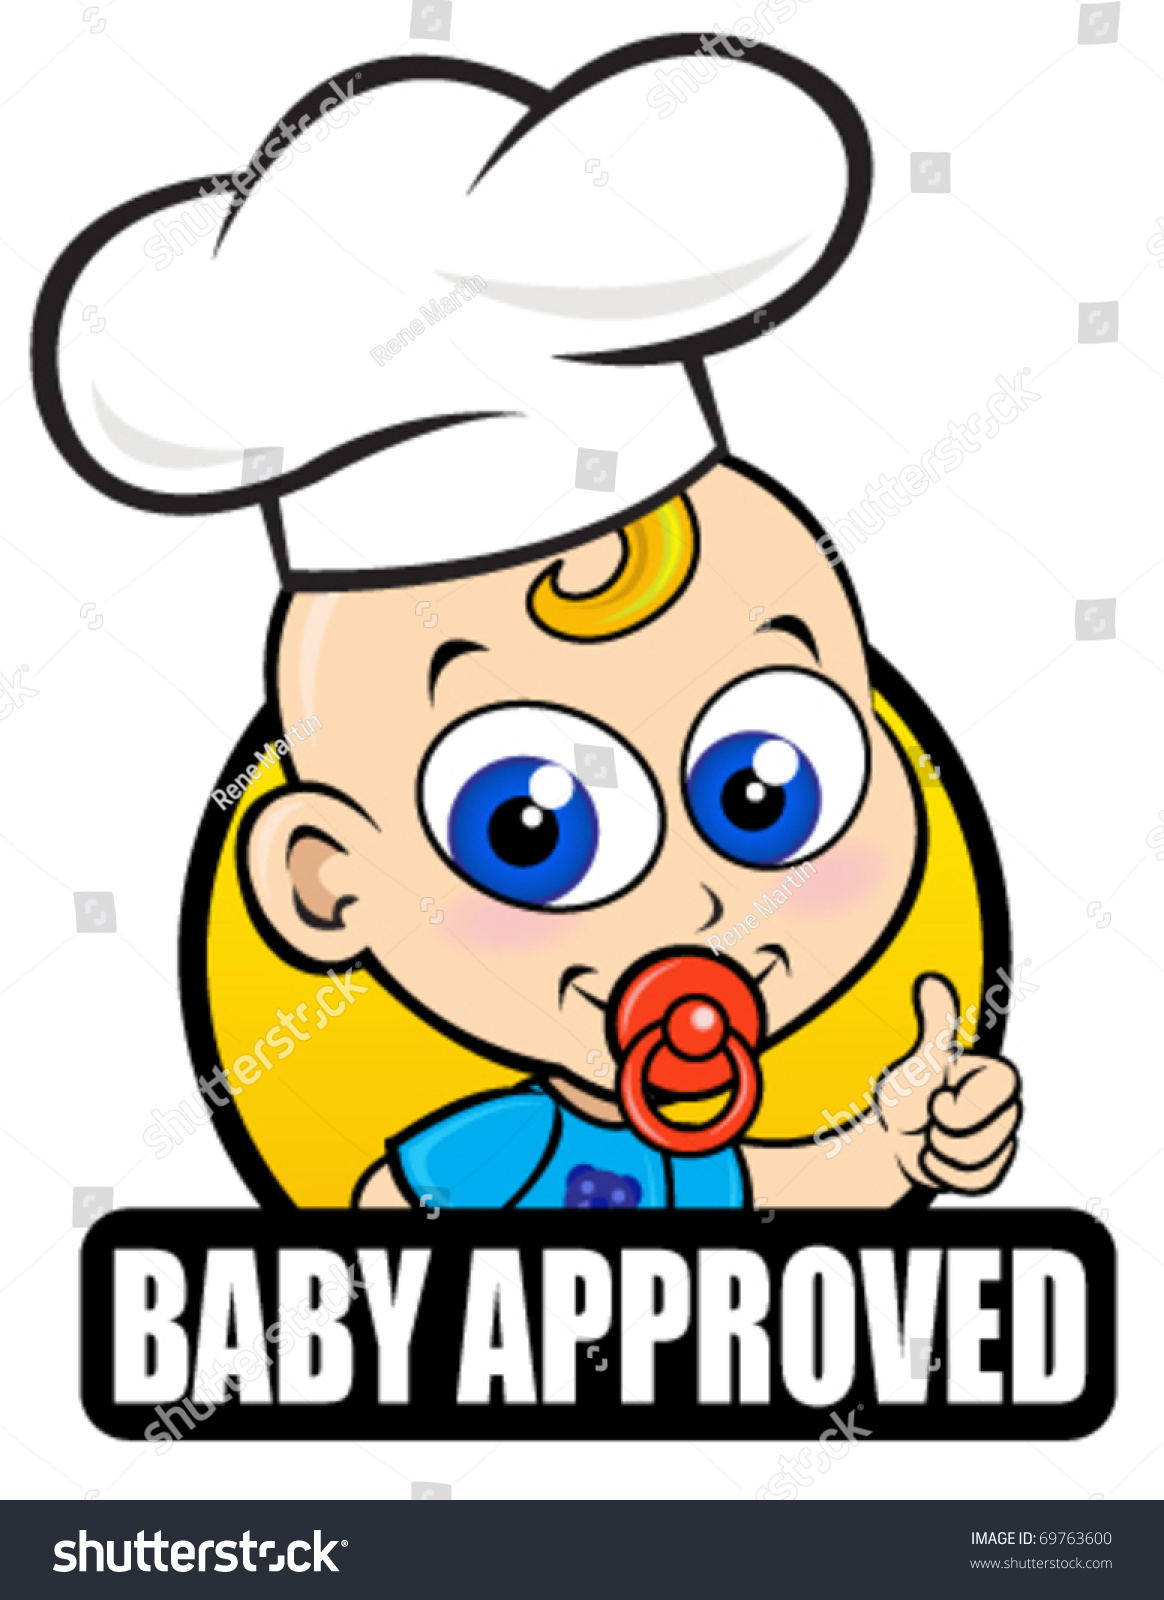 Infant approved